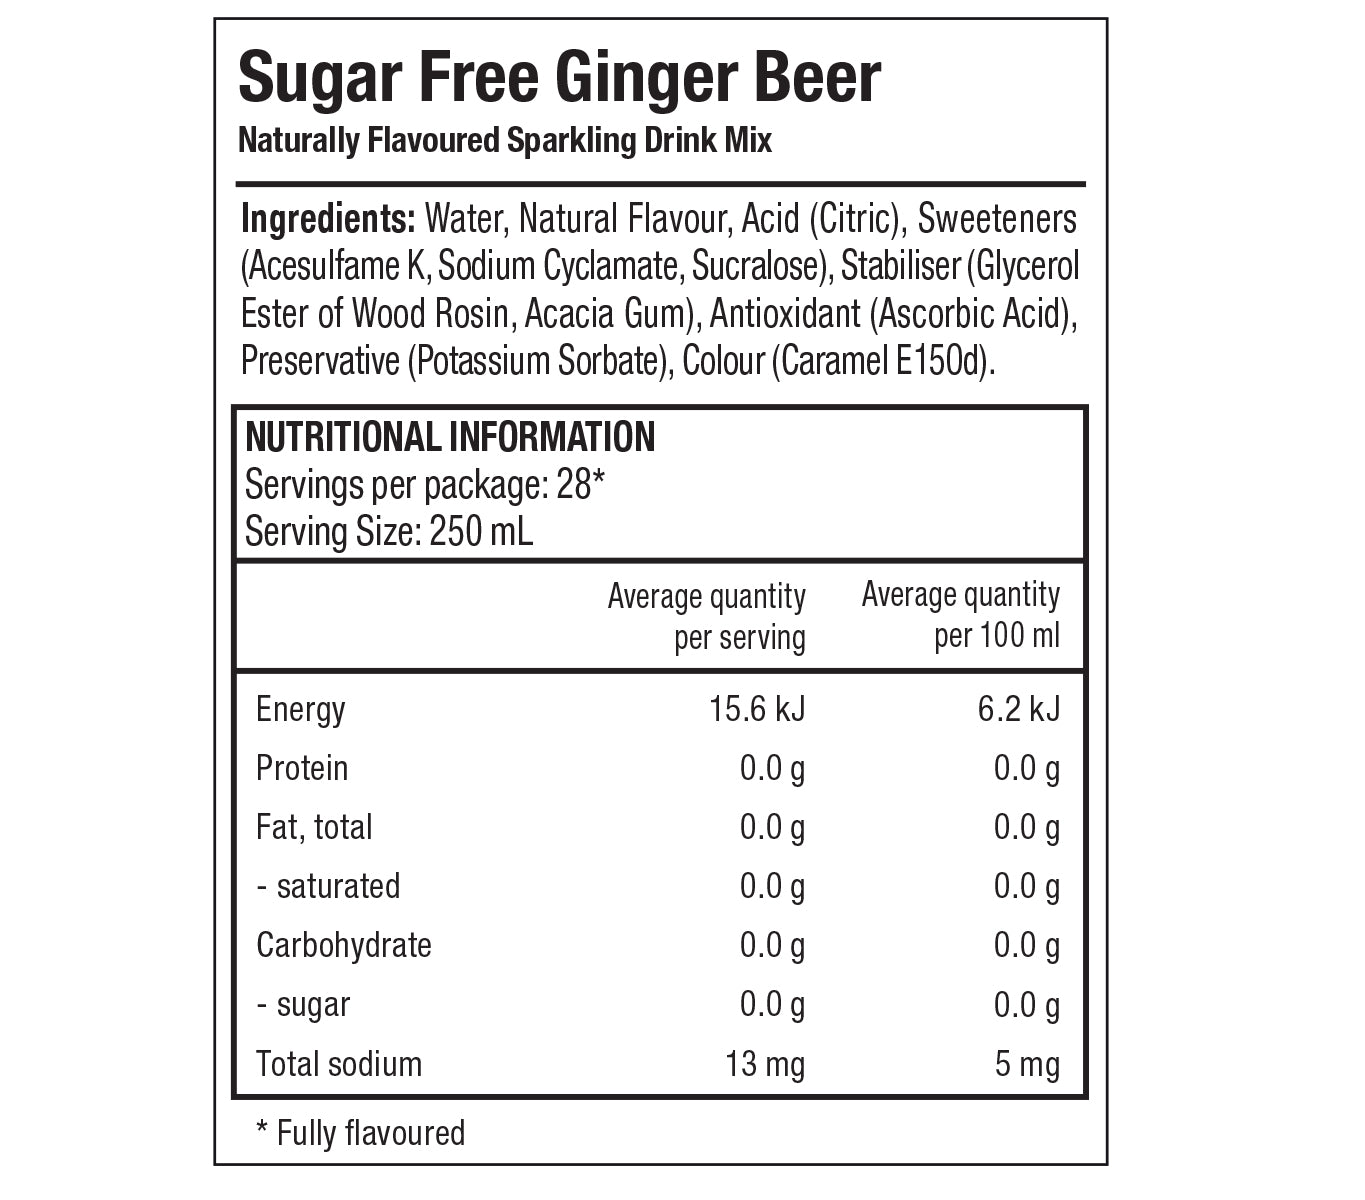 Classics Sugar Free Ginger Beer Nutrition Label